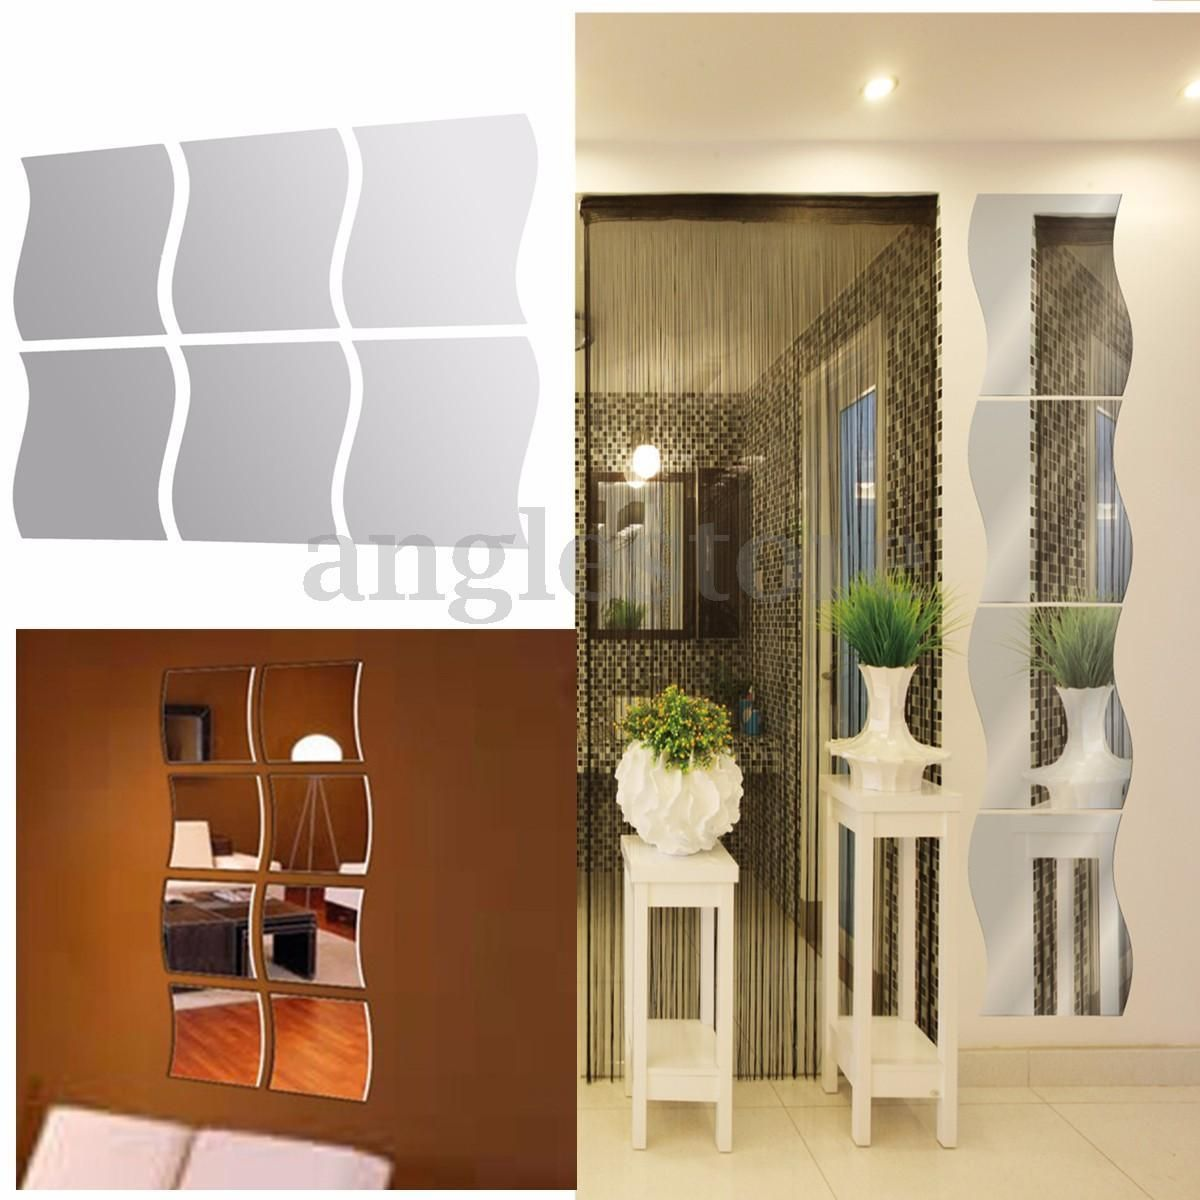 D mirror wall stickers vinyl removable home view window decal art